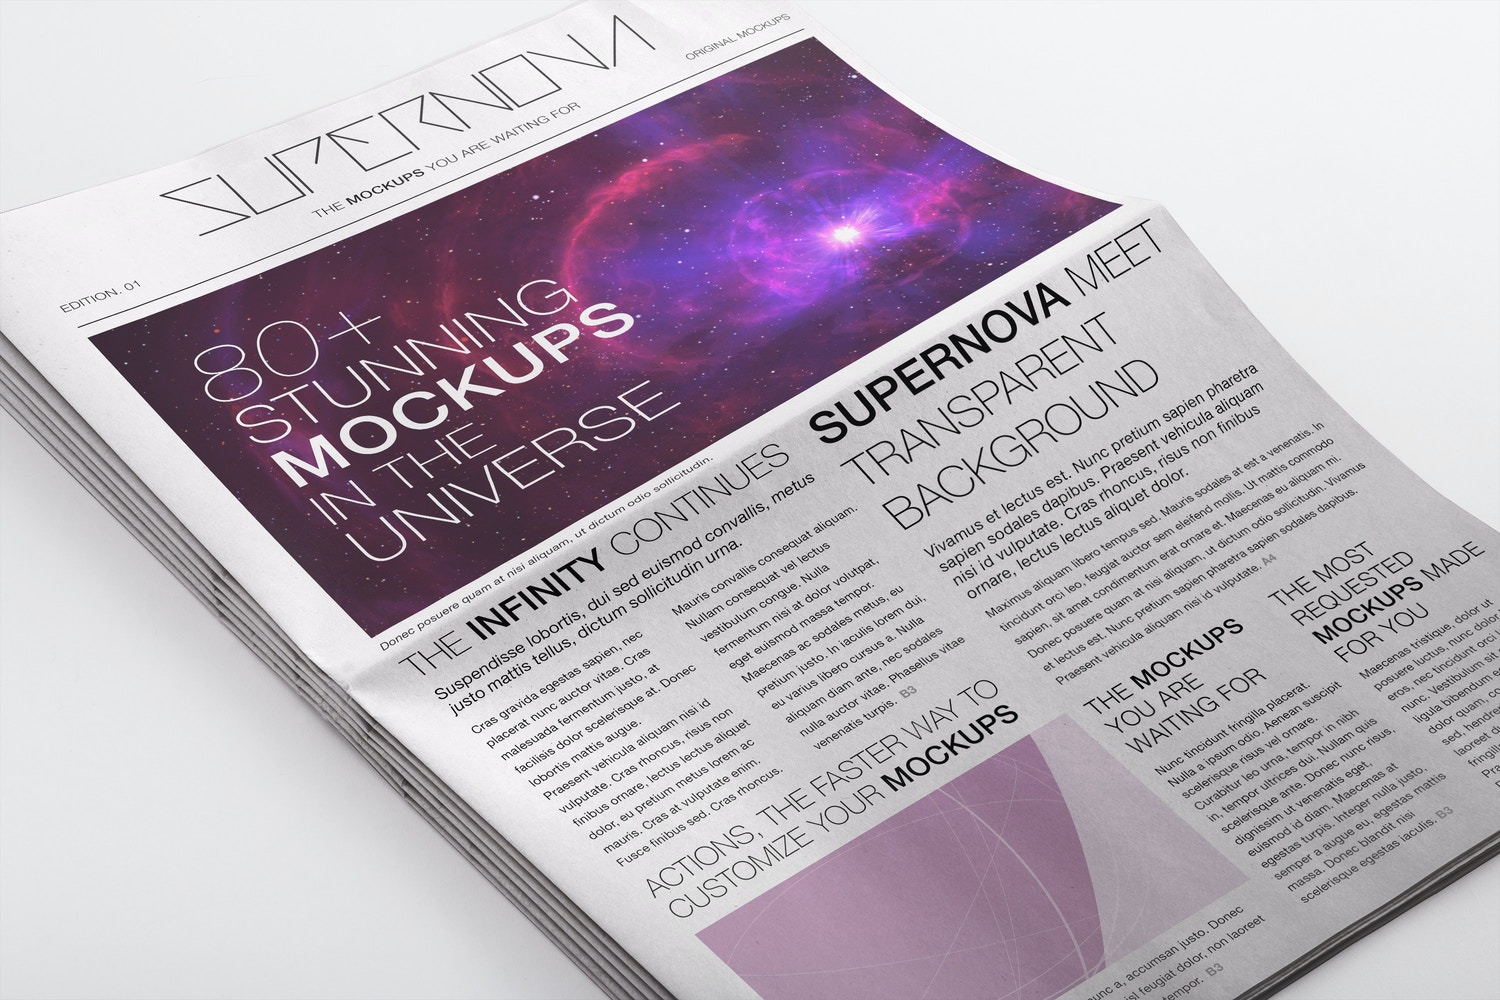 Newspaper PSD Mockup 03 by Original Mockups on Original Mockups